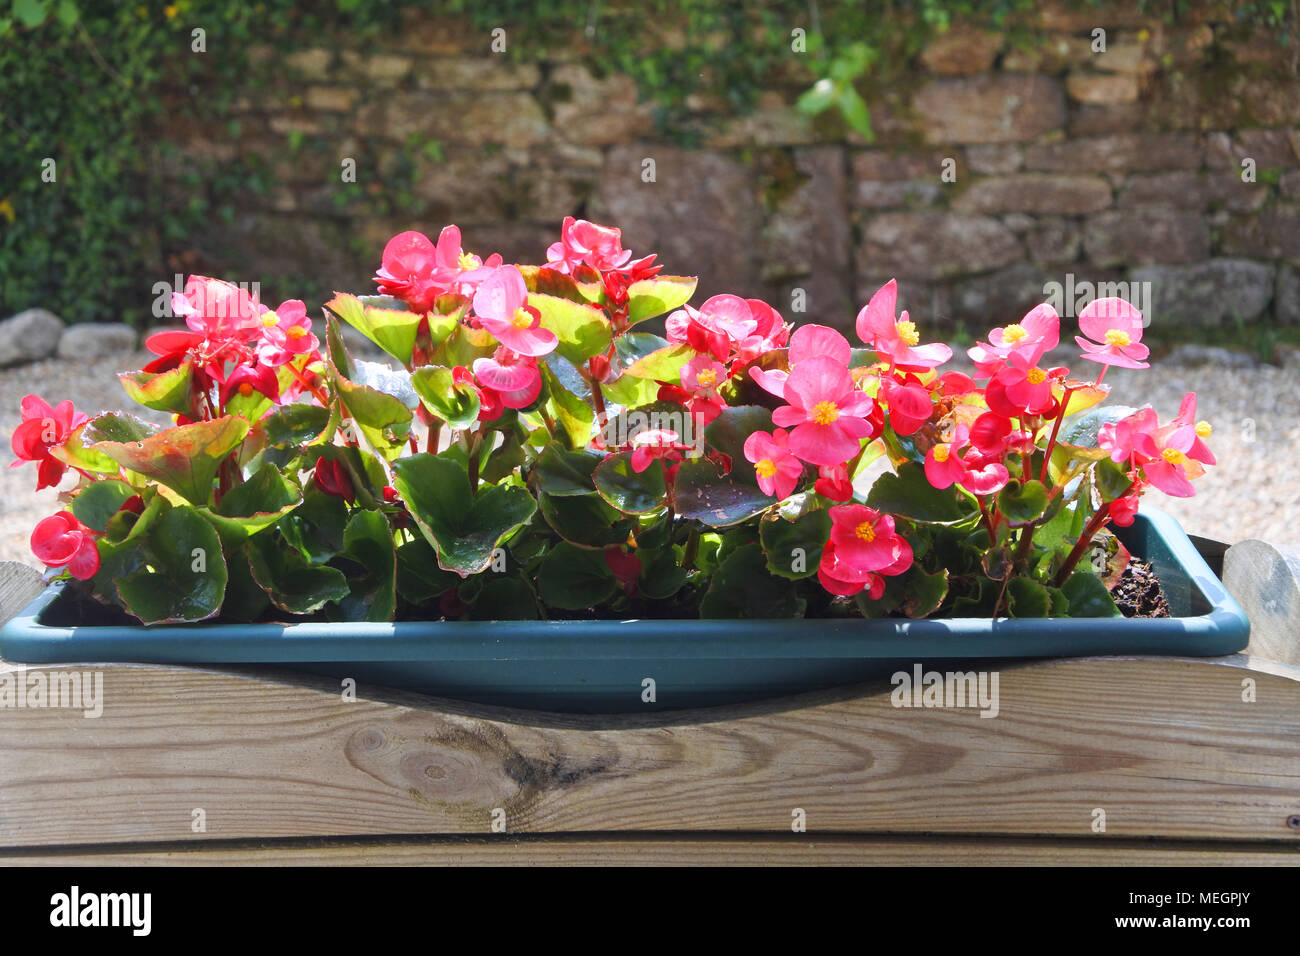 A colourful window box full of begonias - John Gollop - Stock Image